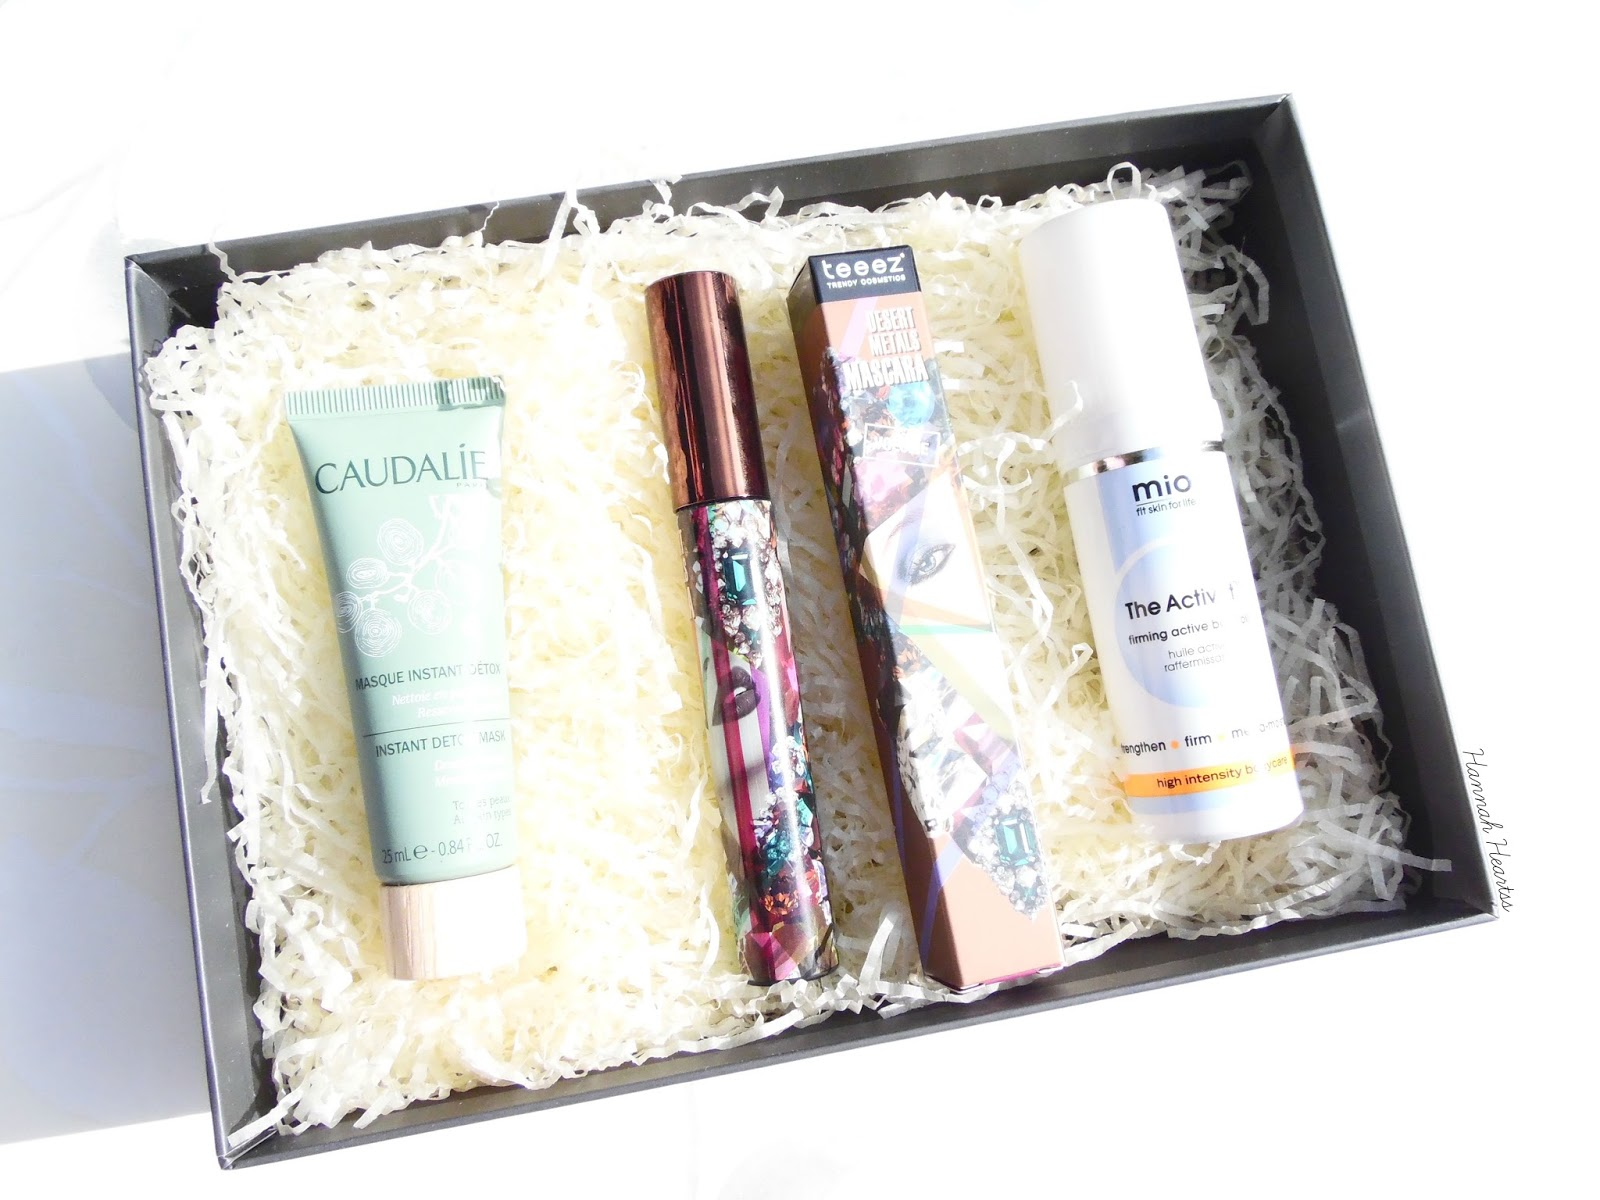 Libbie Club September Box